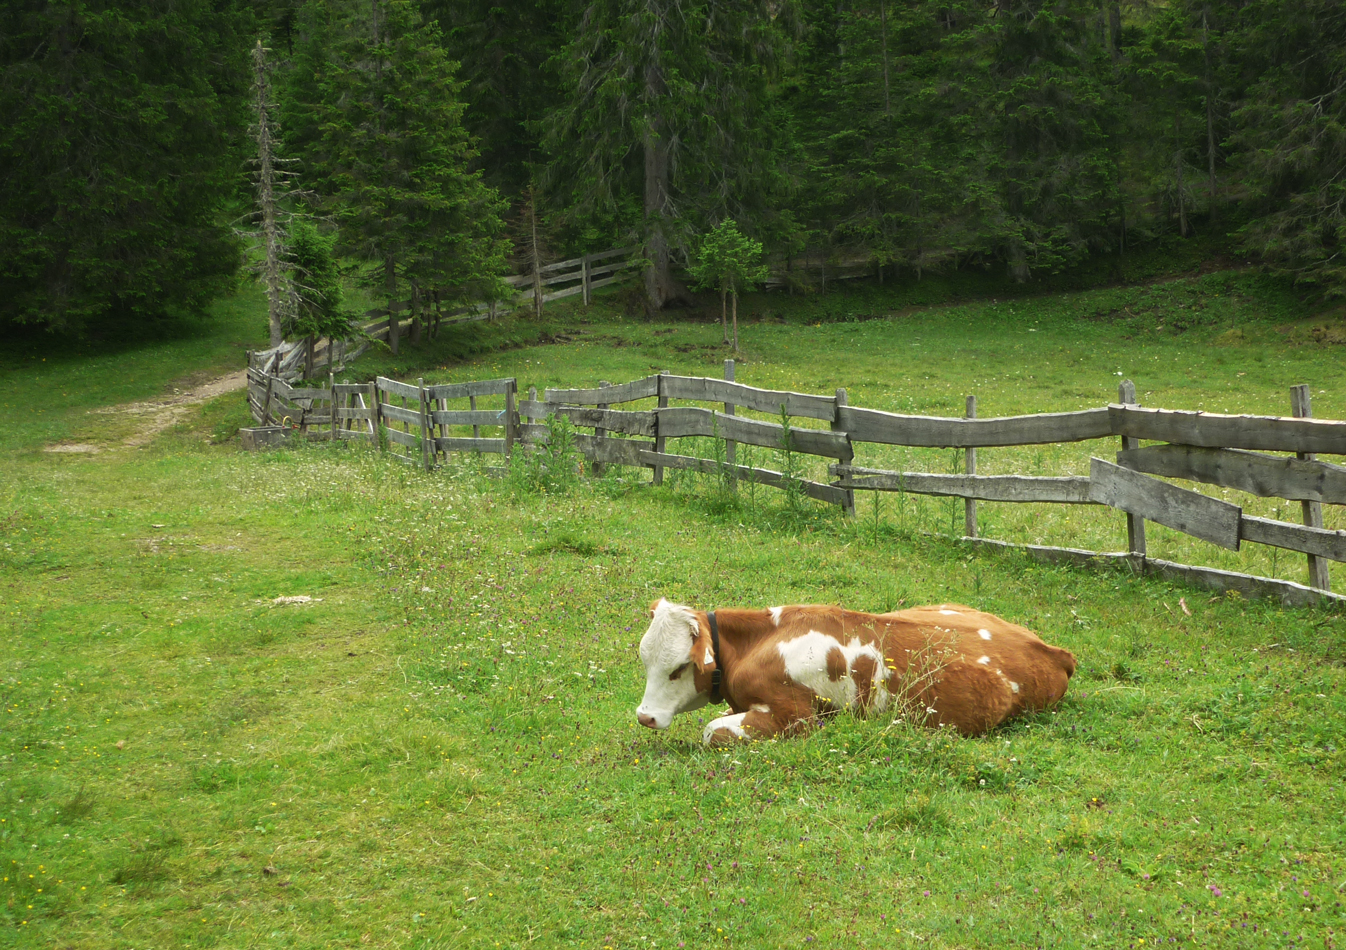 A happy cow near lush pastures